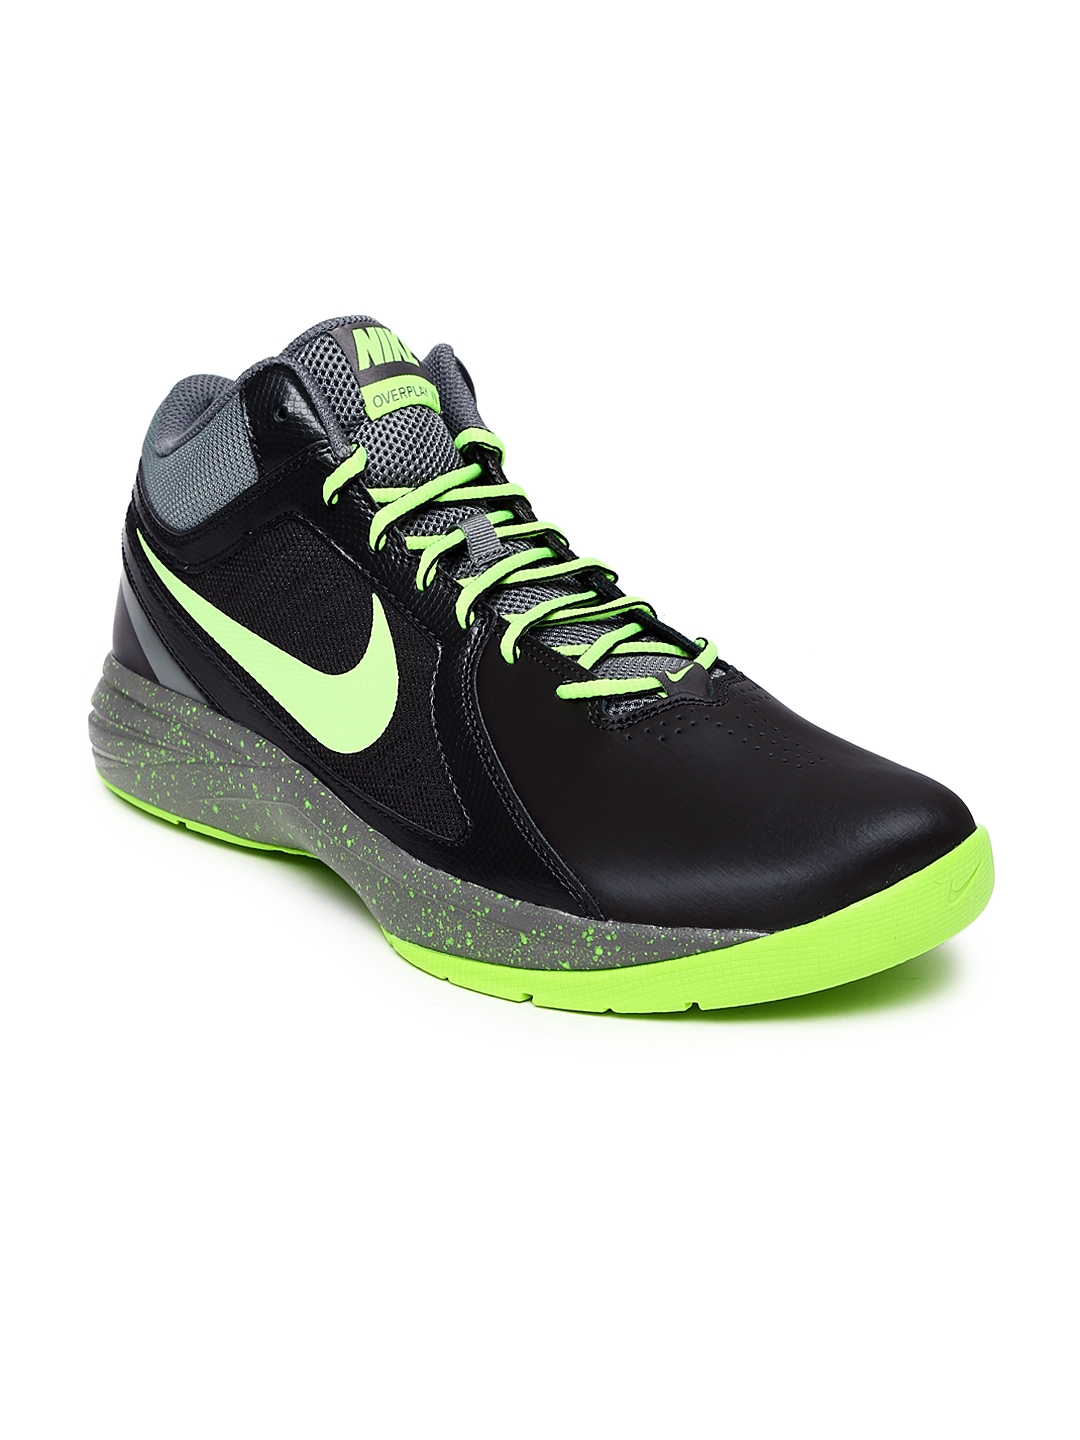 02a518635b22d Nike Men Black & Neon Green The Overplay VIII Basketball Shoes